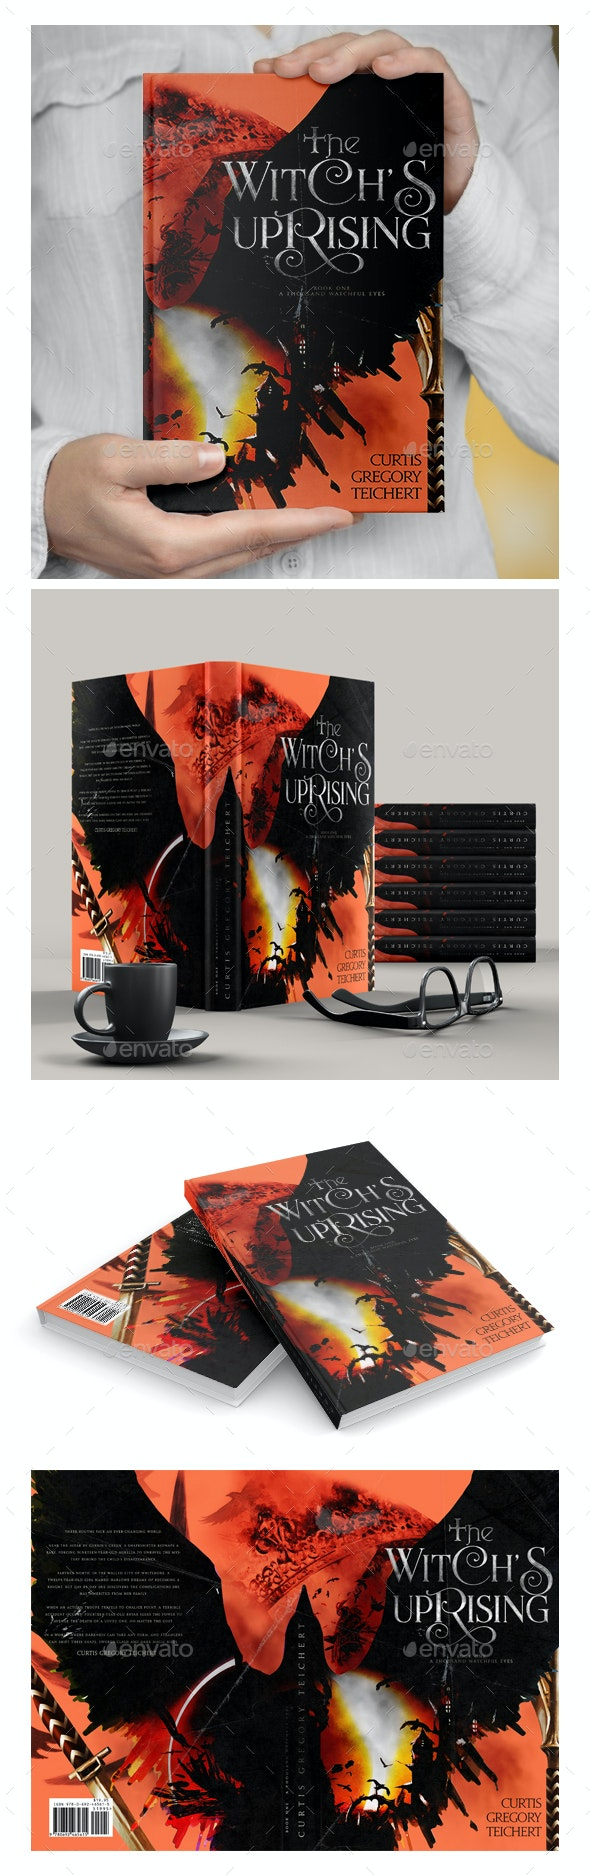 Witches Uprising - Ebook Cover - Print Templates